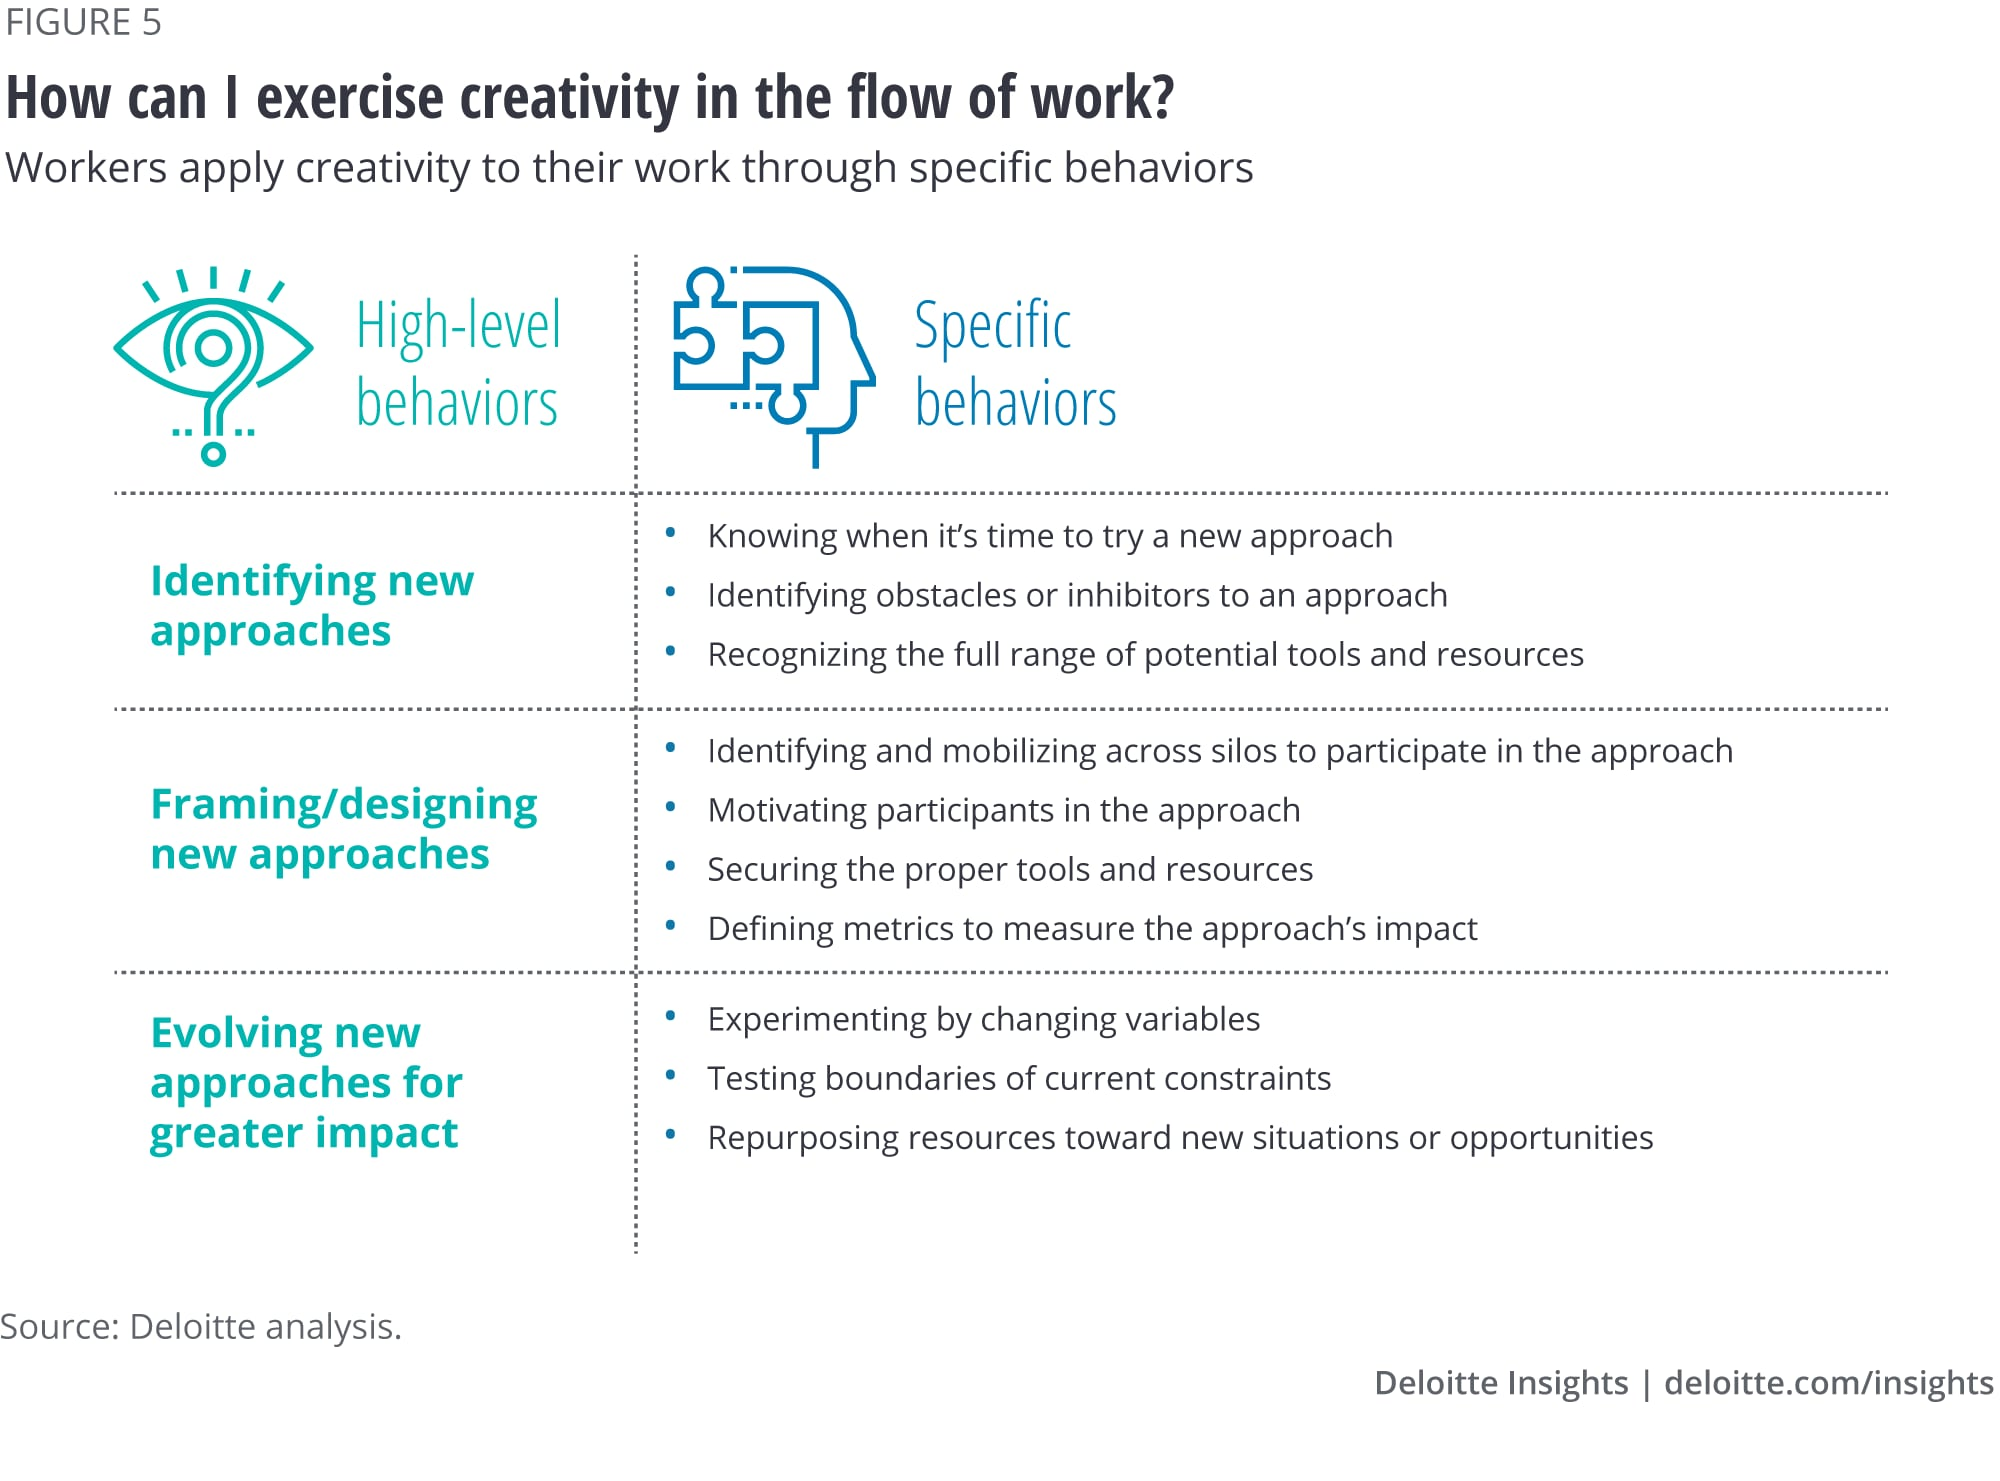 How can I exercise creativity in my work?